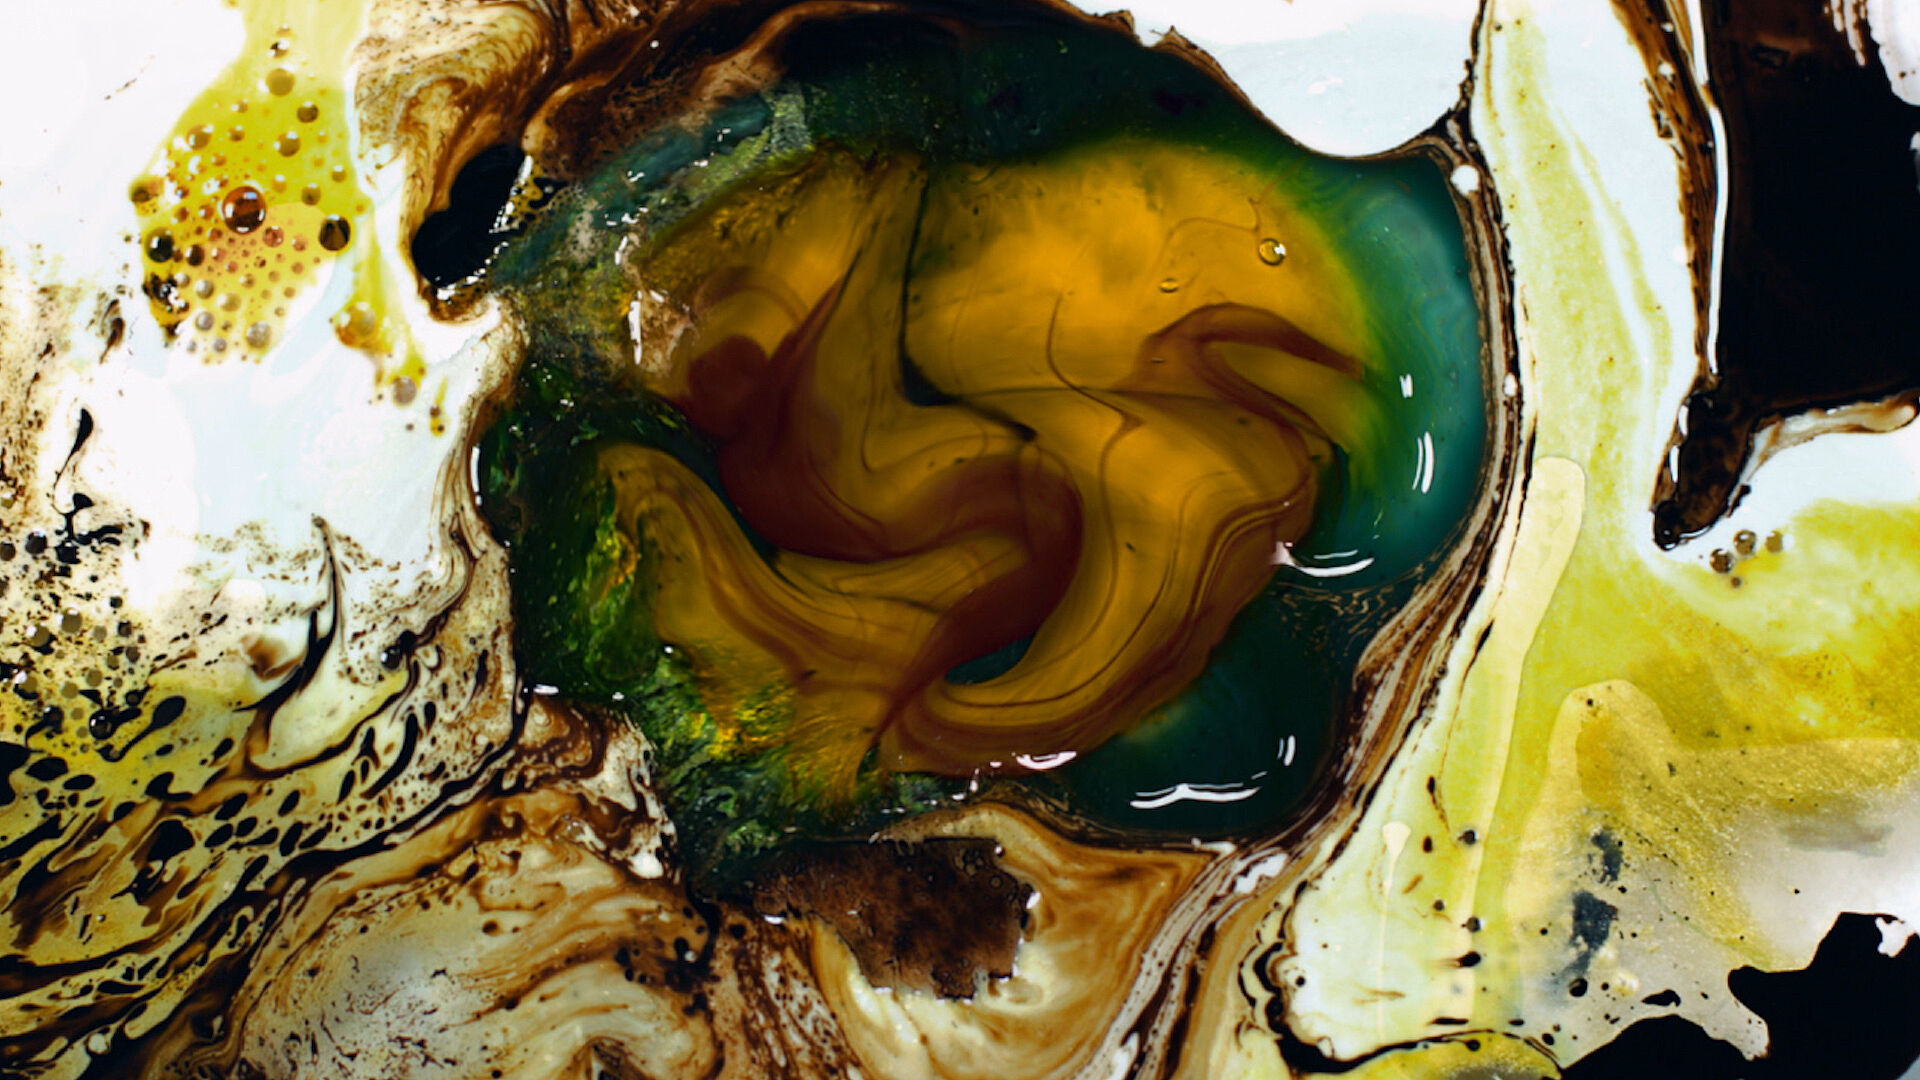 An flat, abstract image that resembles different liquids resisting one another.